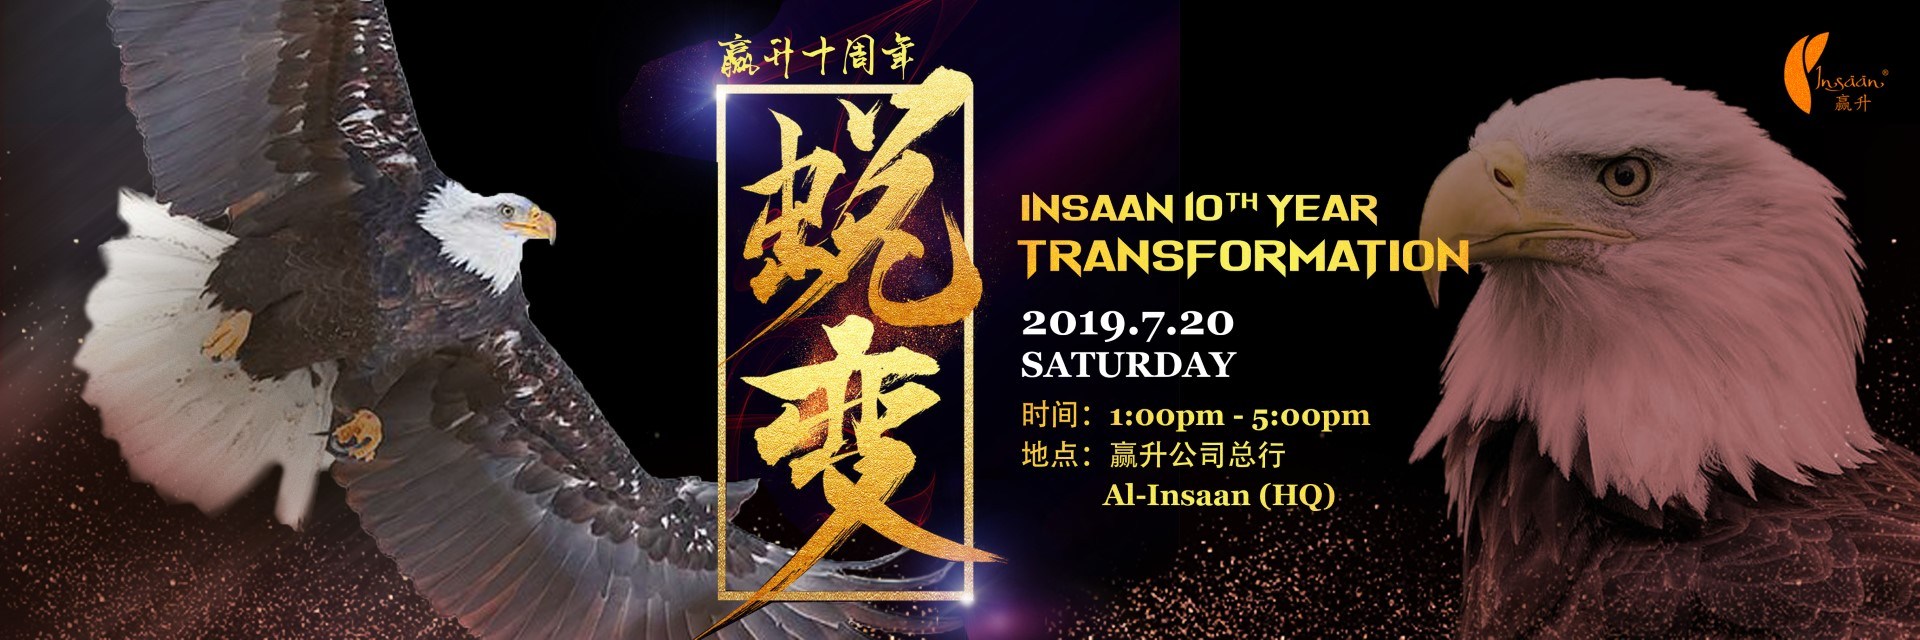 Insaan 10th Year Transformation